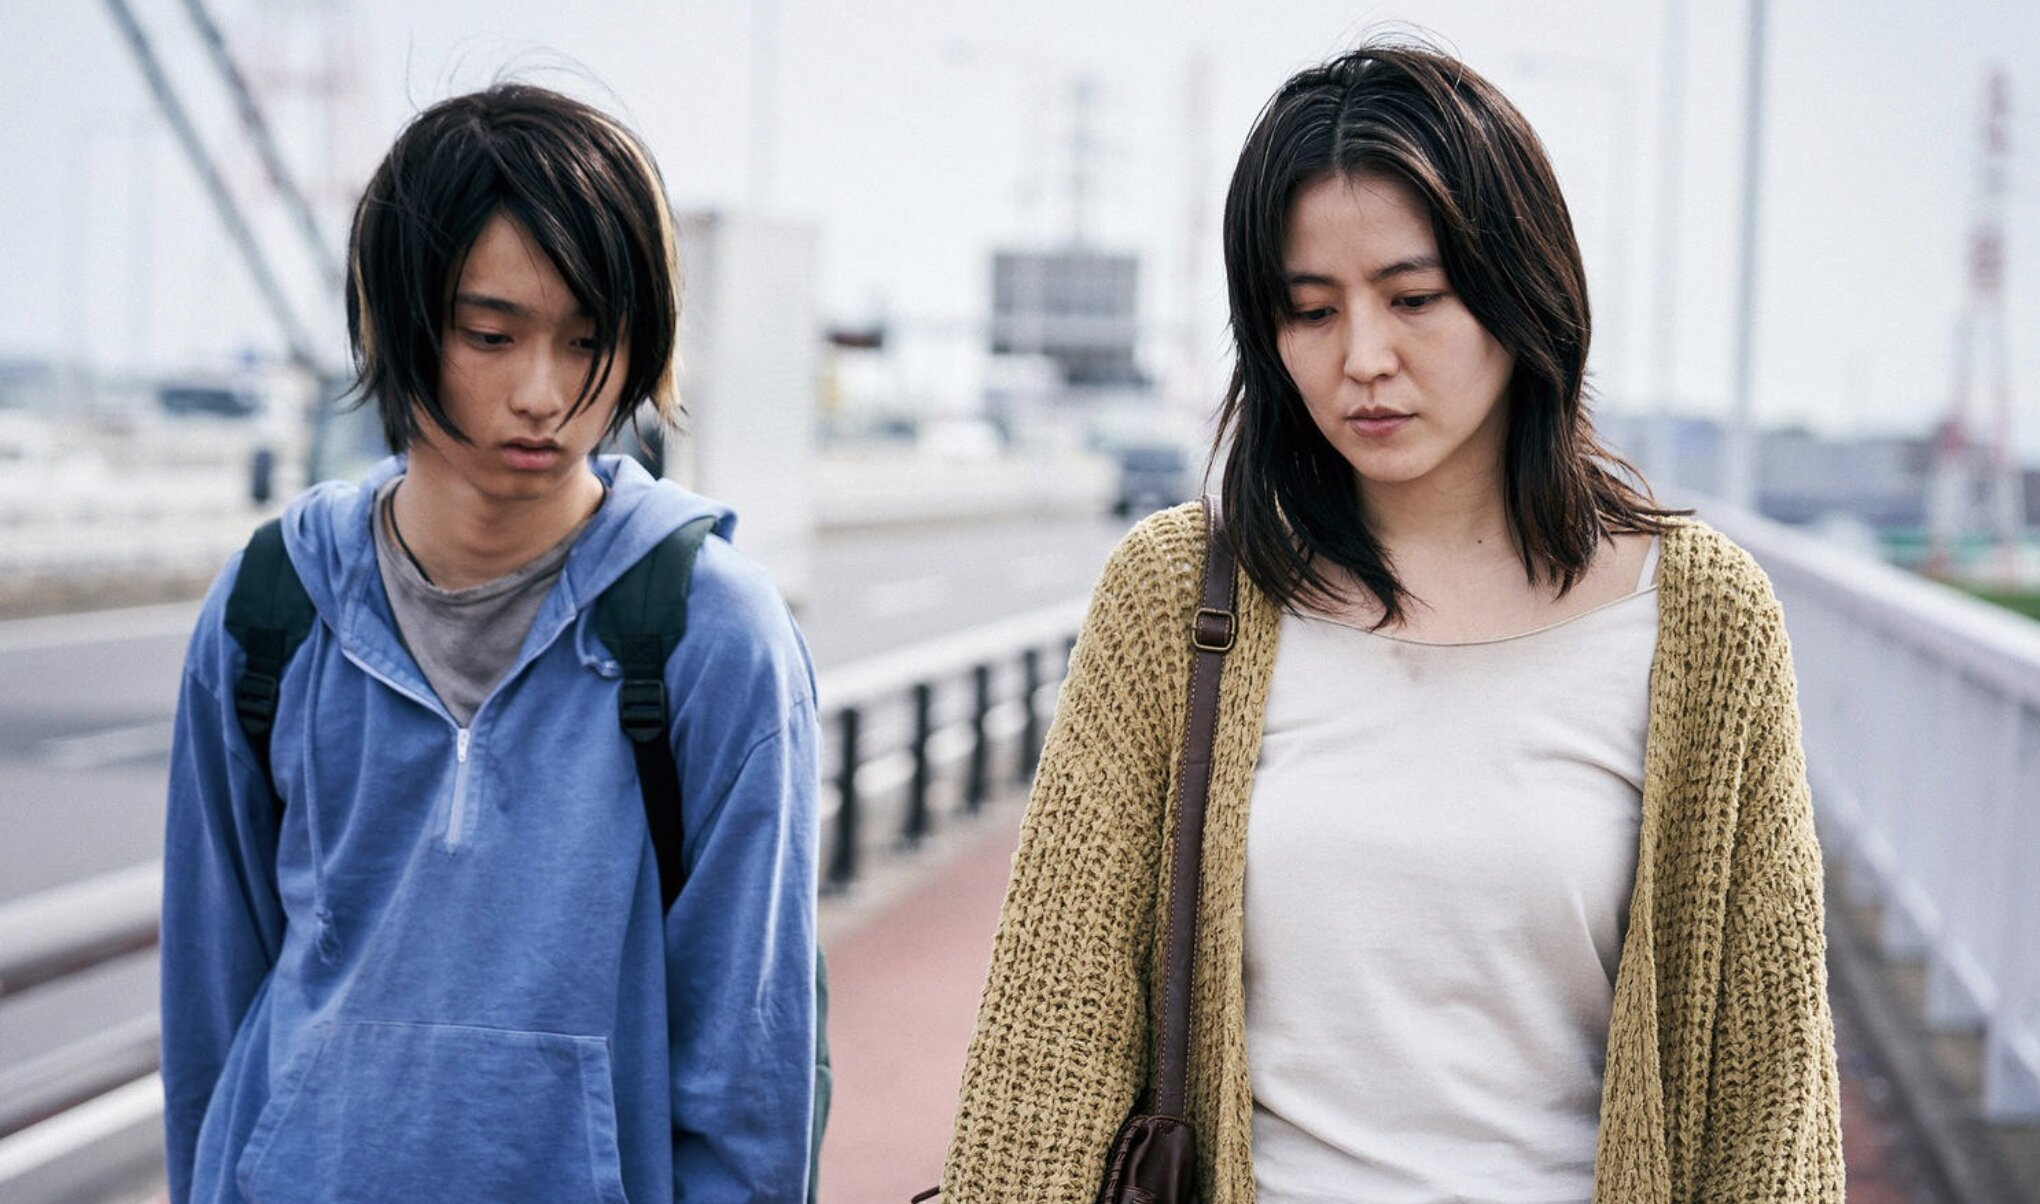 Mother (2020) review - Japanese Netflix film is a tragic story of cruel  parenting